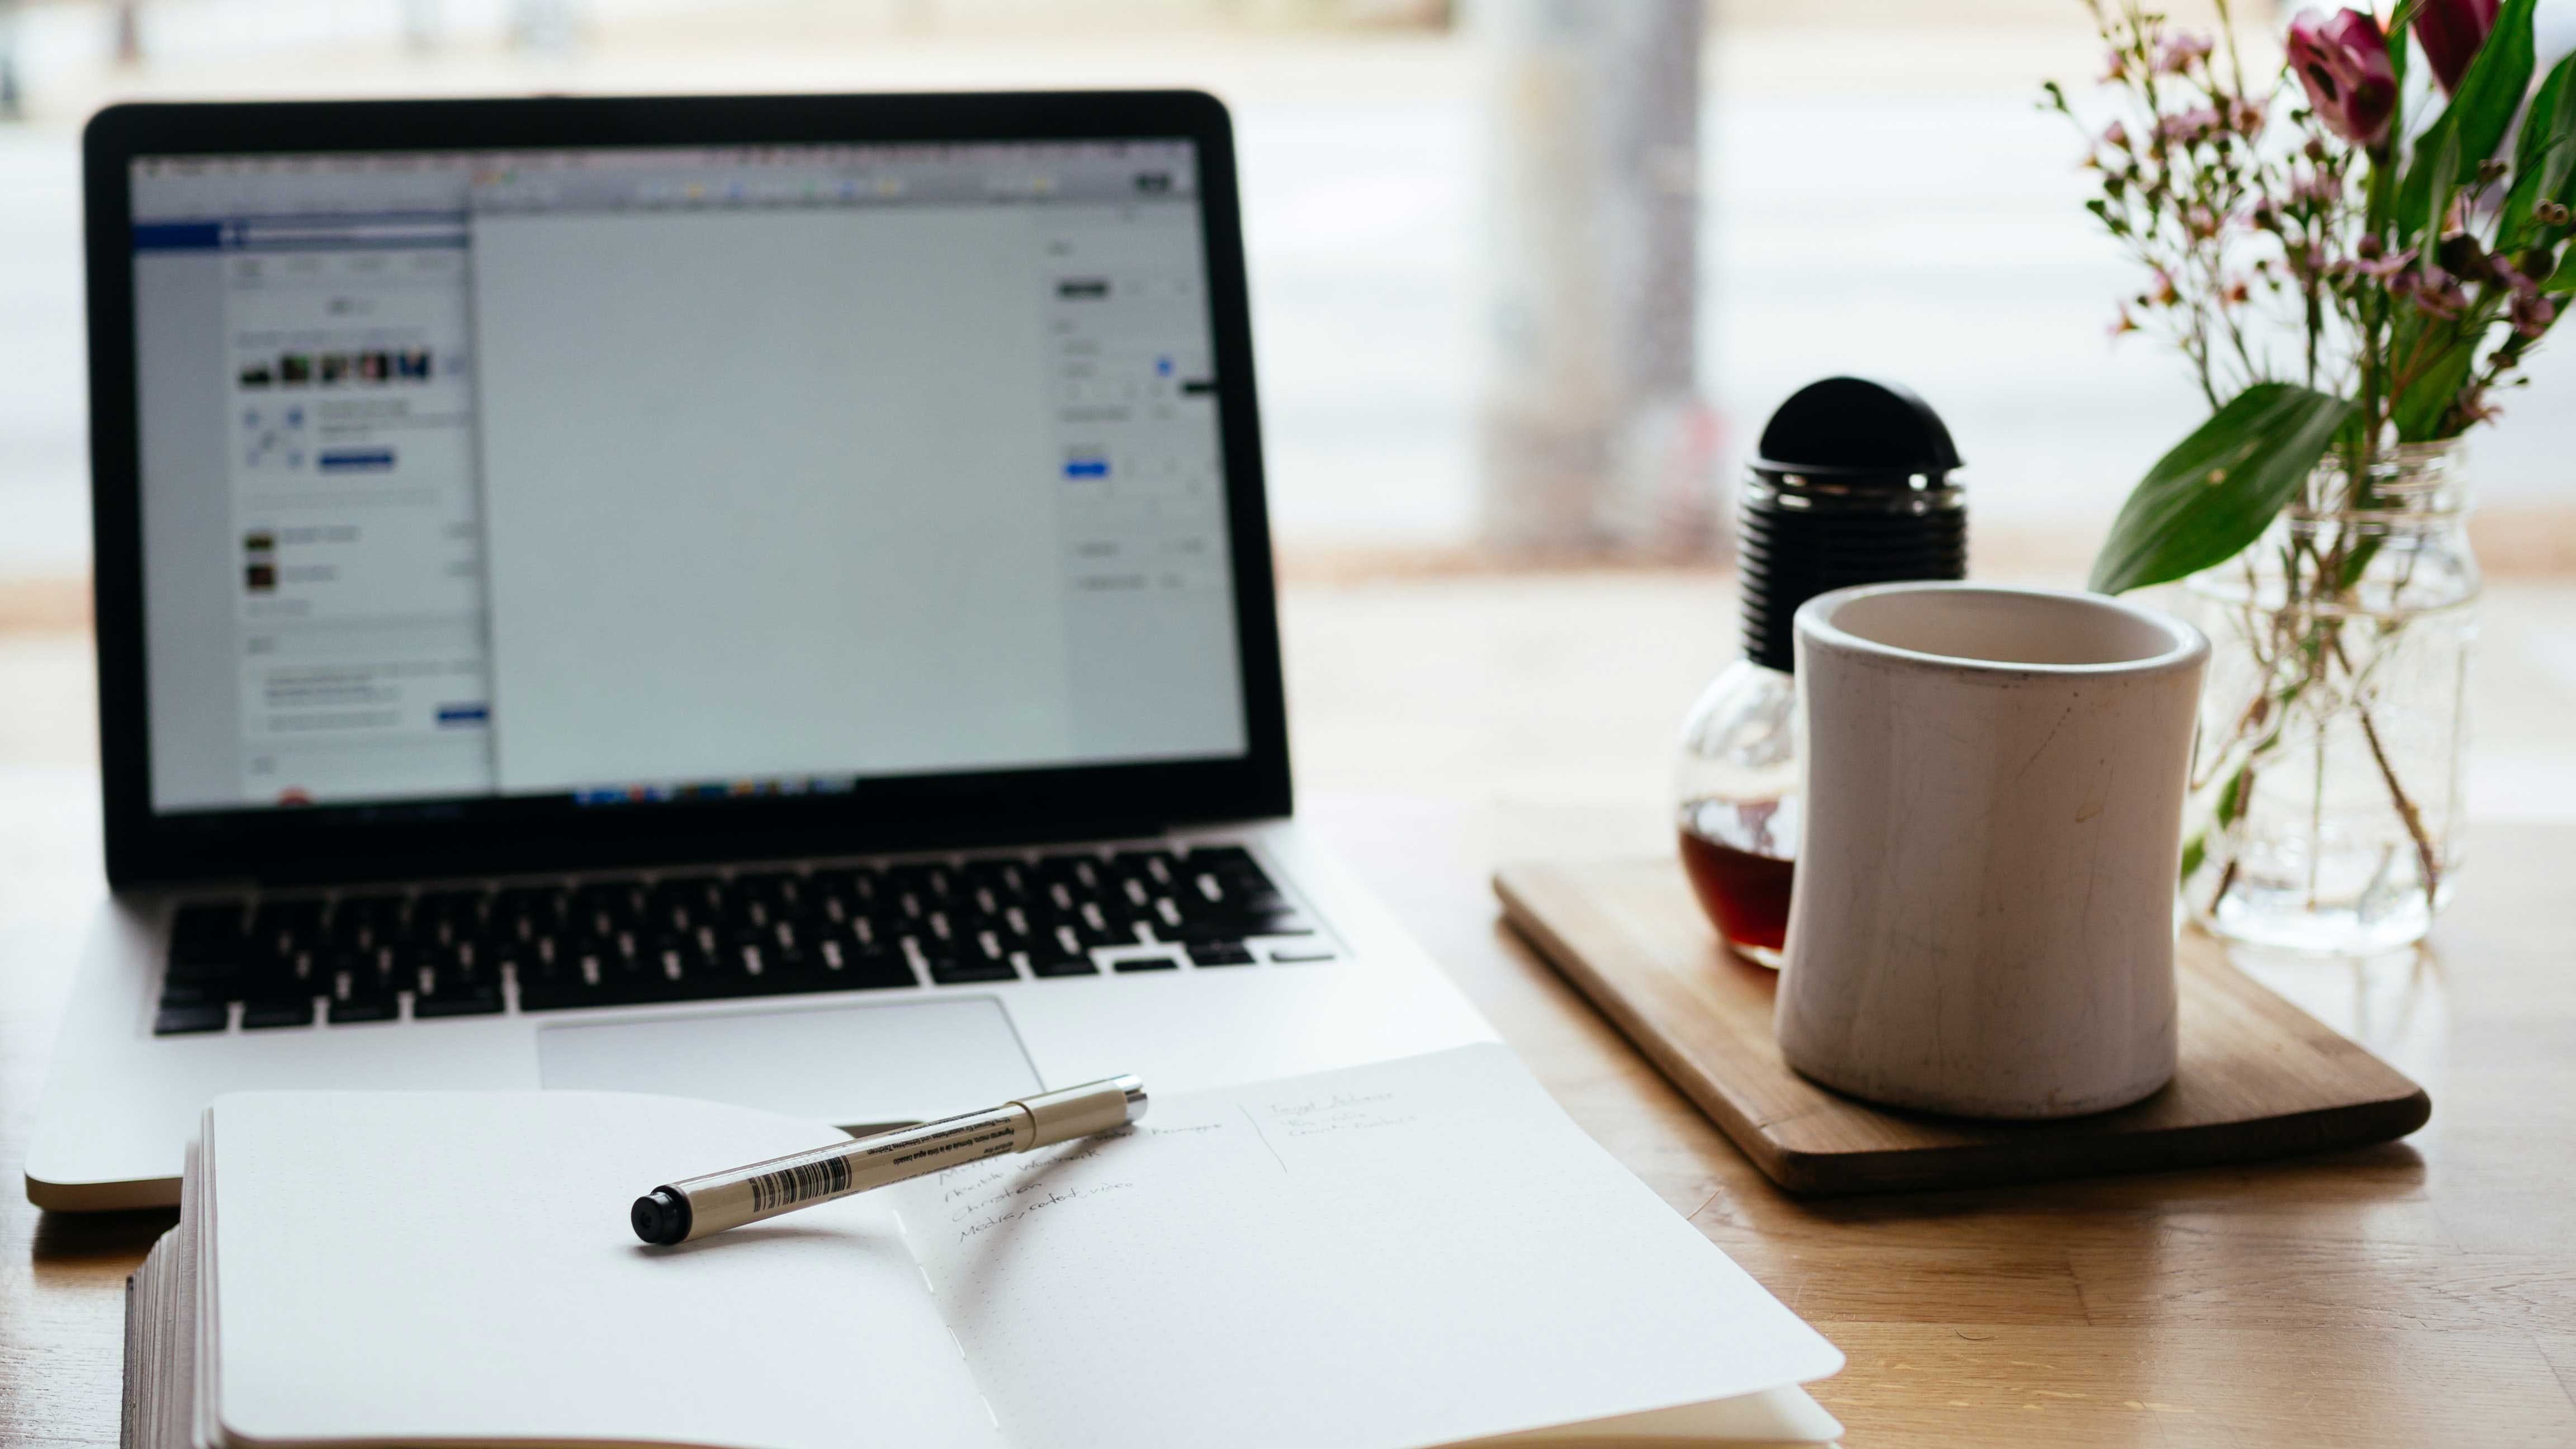 A laptop with an open notepad in front and a cup of coffee to the right